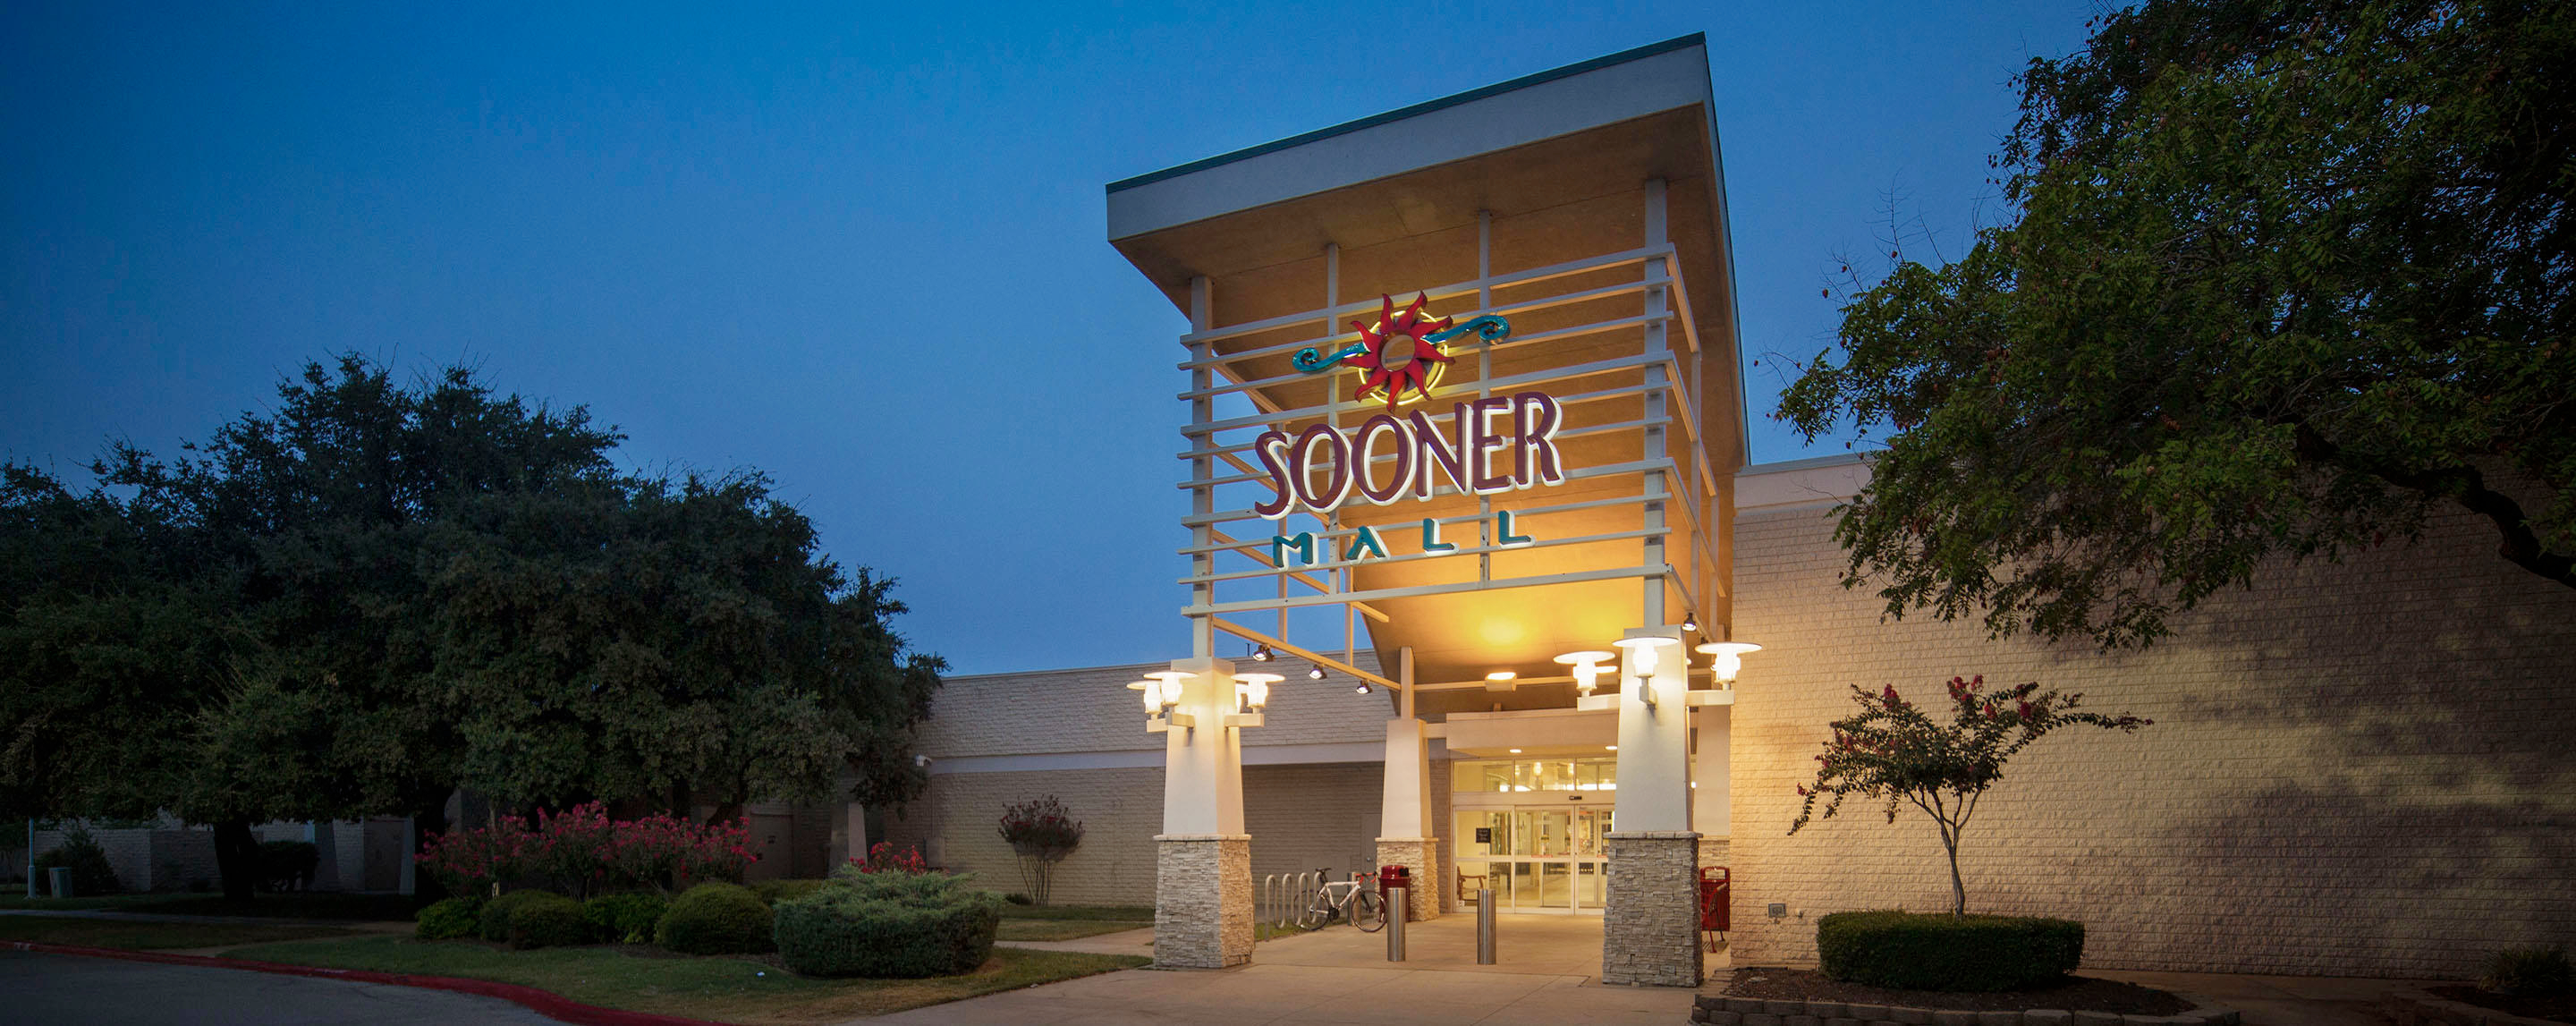 Sooner Mall image 0